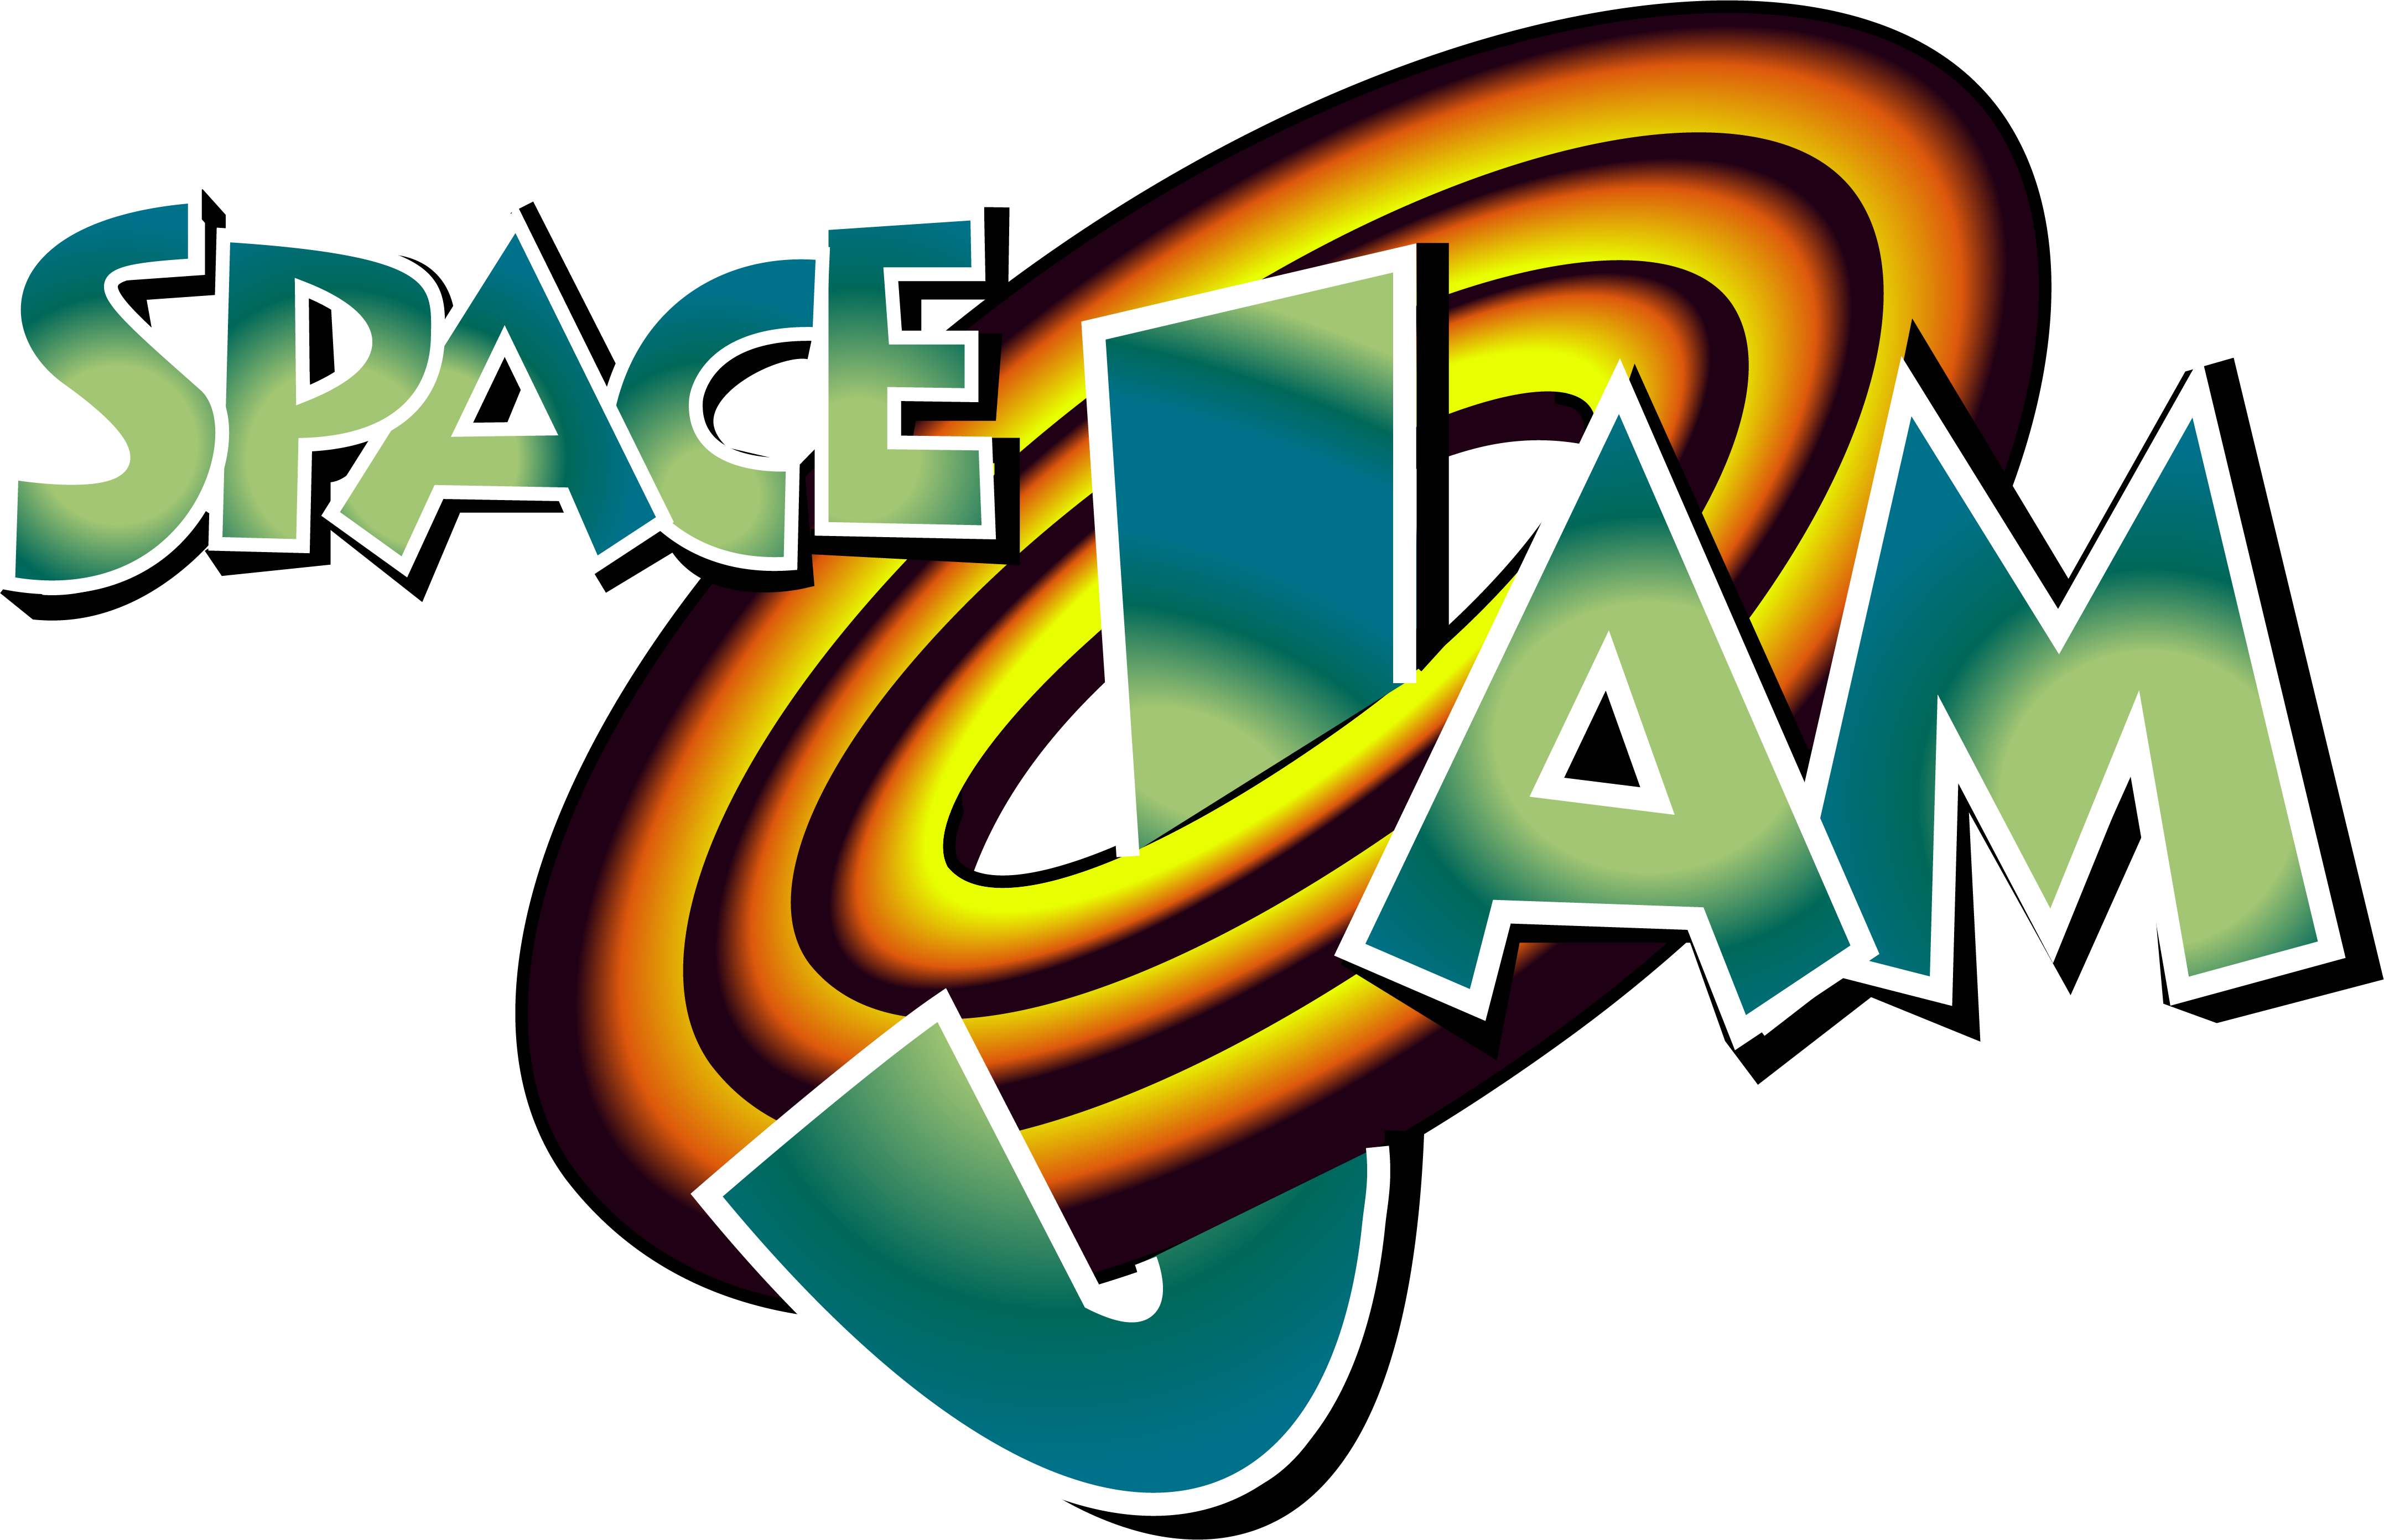 I did a vector of the Space Jam logo for a Graphic Design.